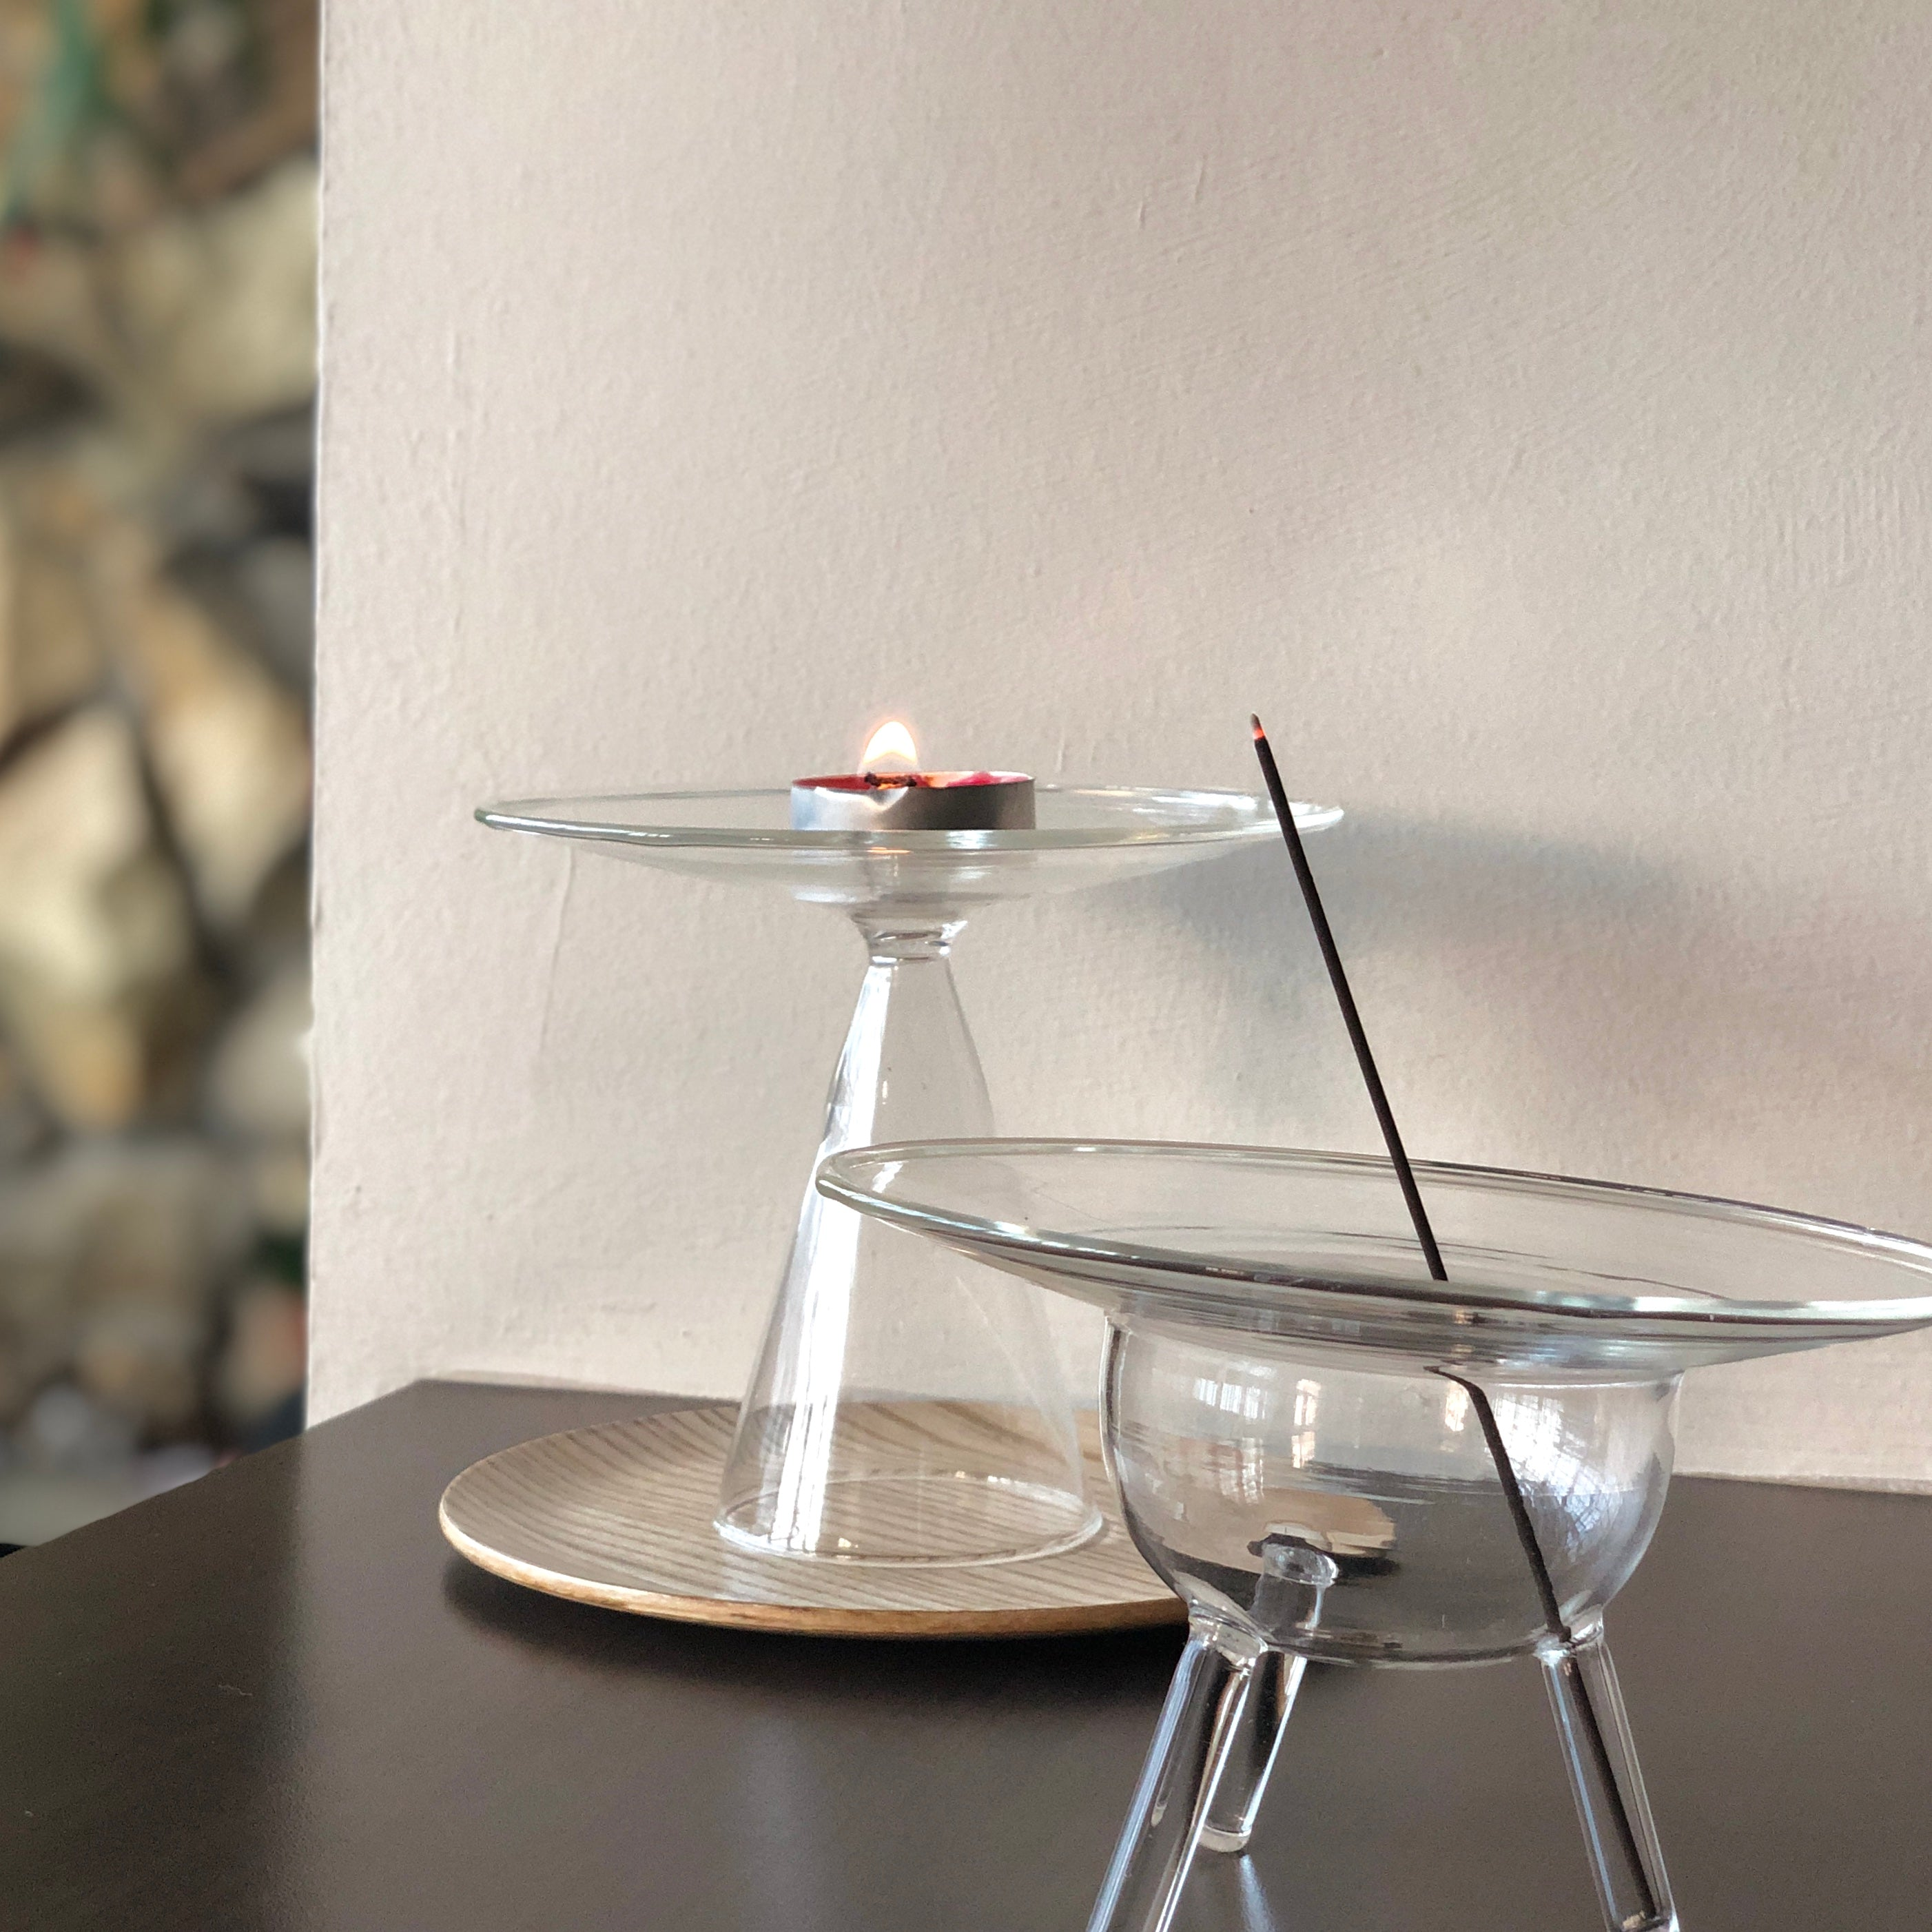 UFO Glass Incense Holder by Prose Décor